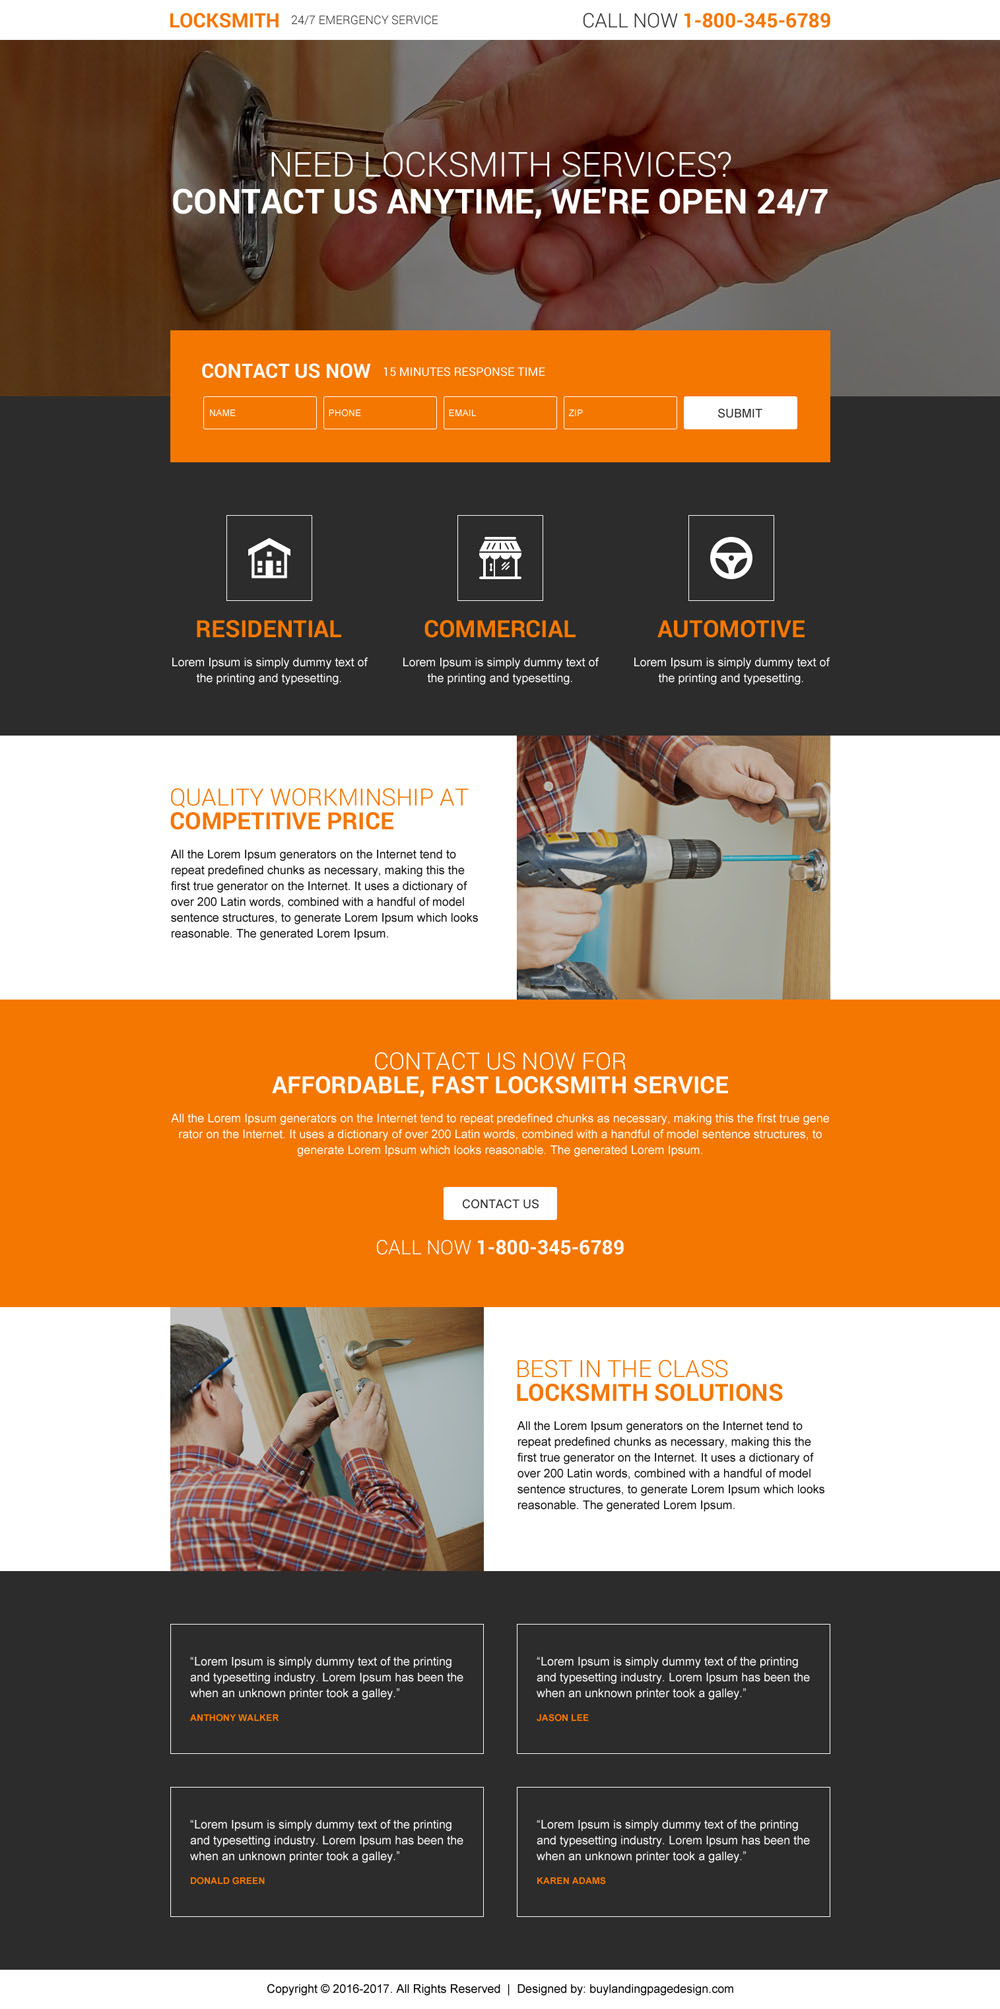 landing-page-design-for-locksmiths-service-lead-generation-006